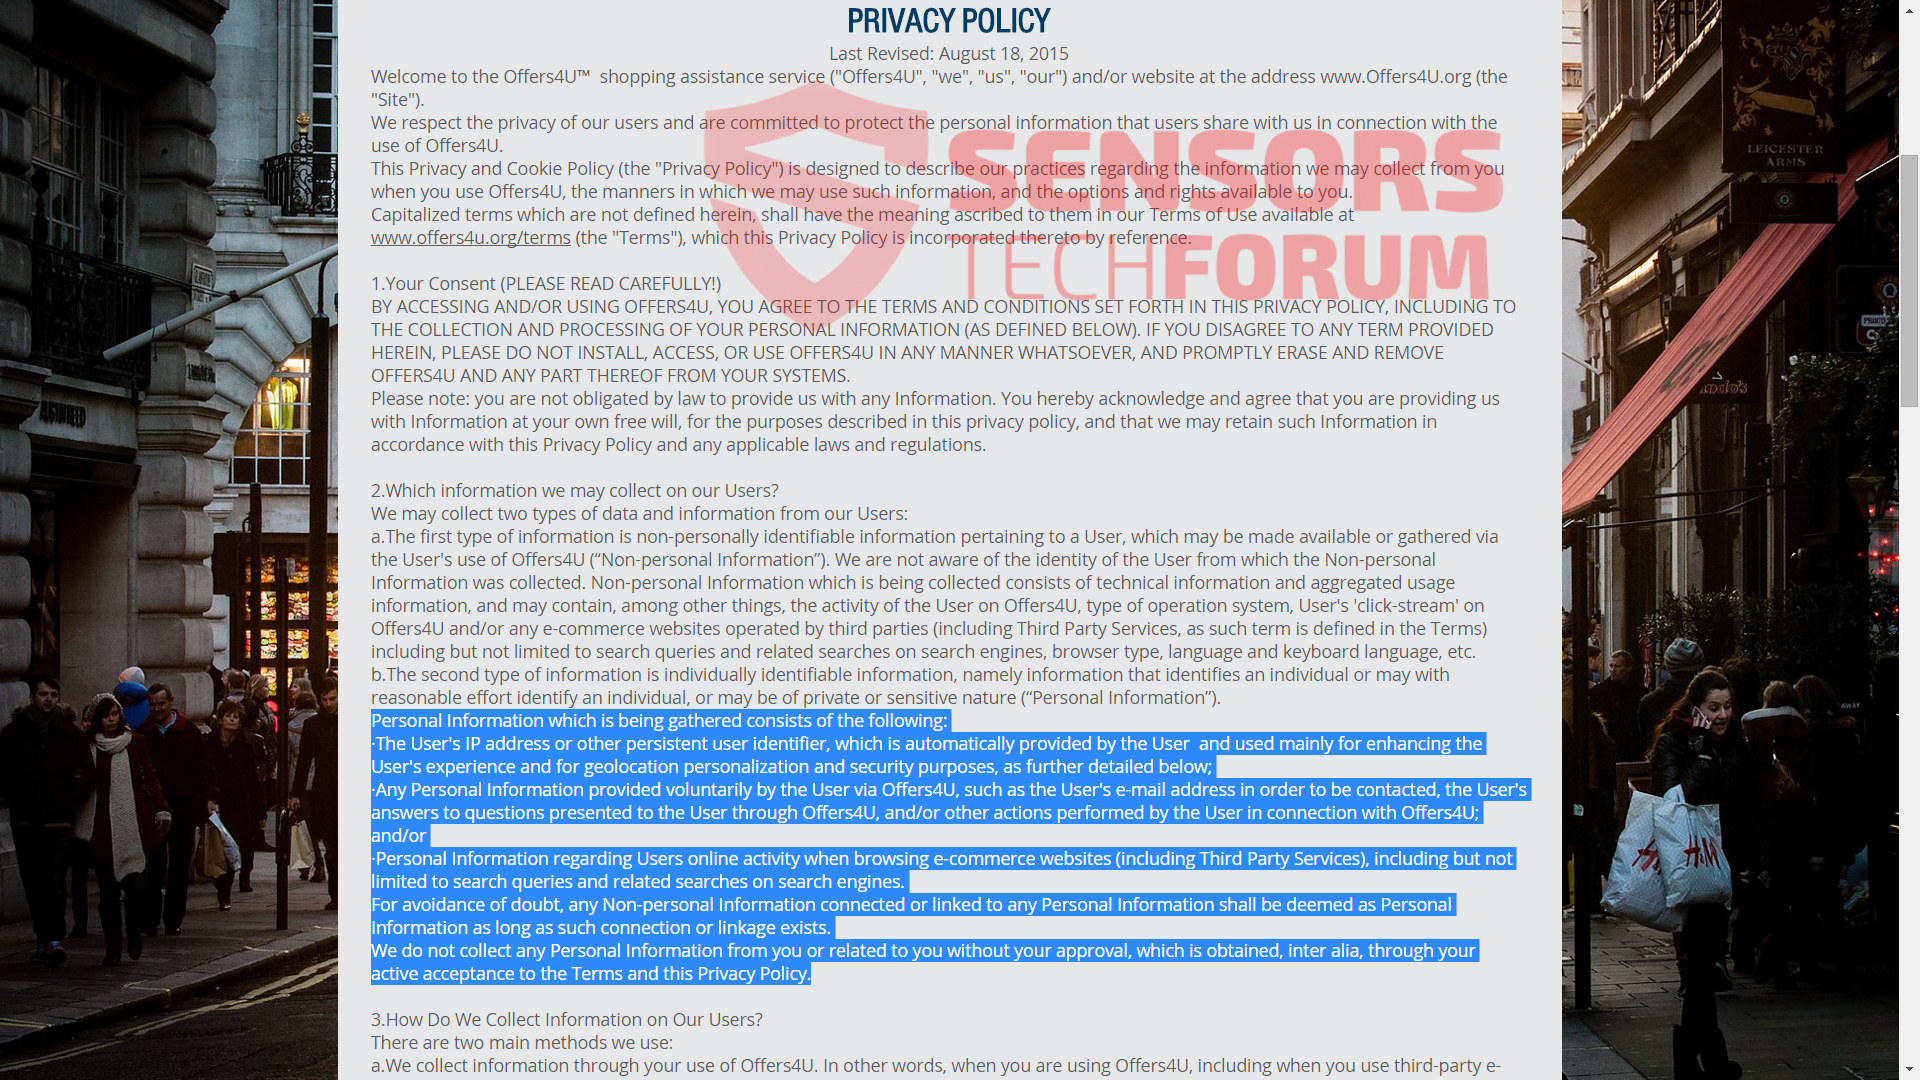 SensorsTechForum-offers4u-offers-4u-official site-privacy-policy